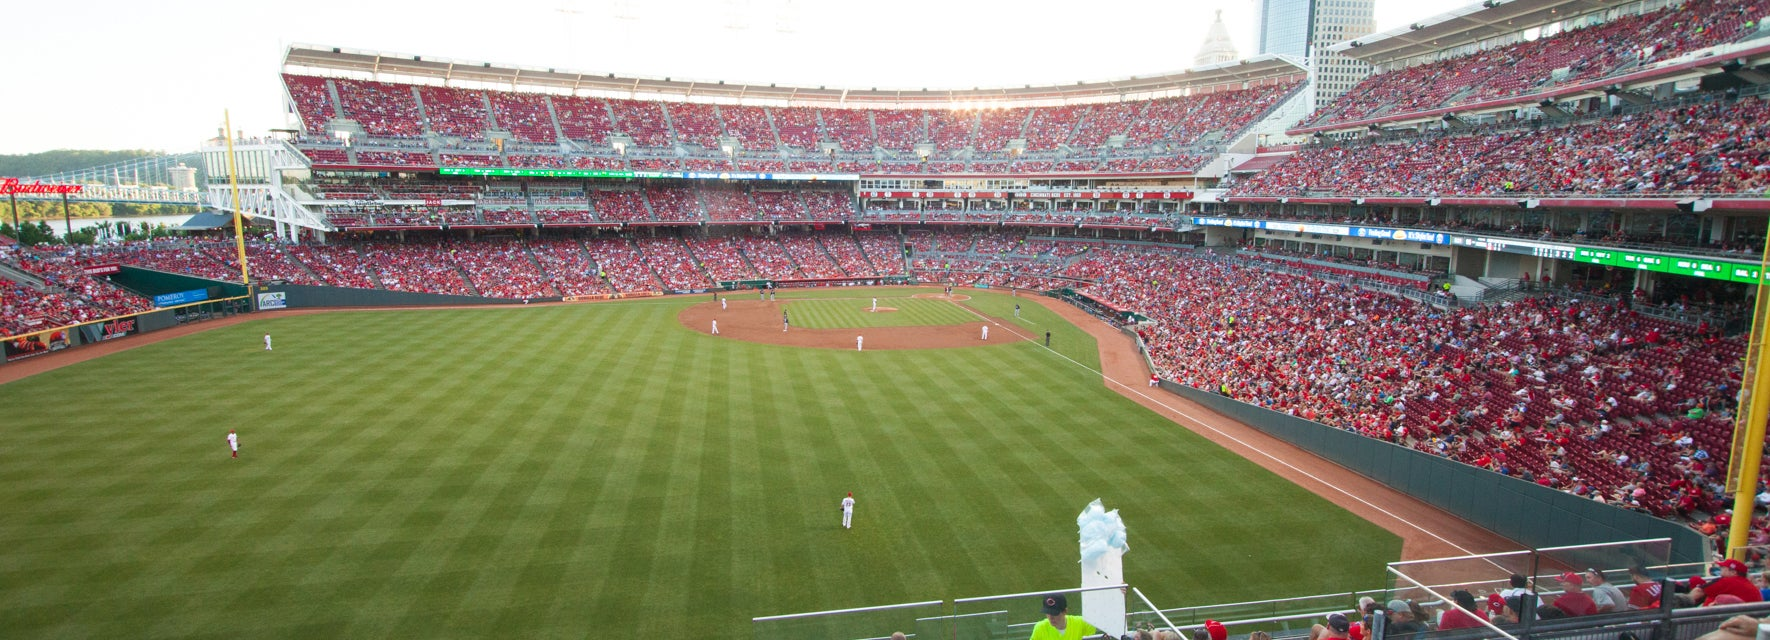 Seat view from Bleachers